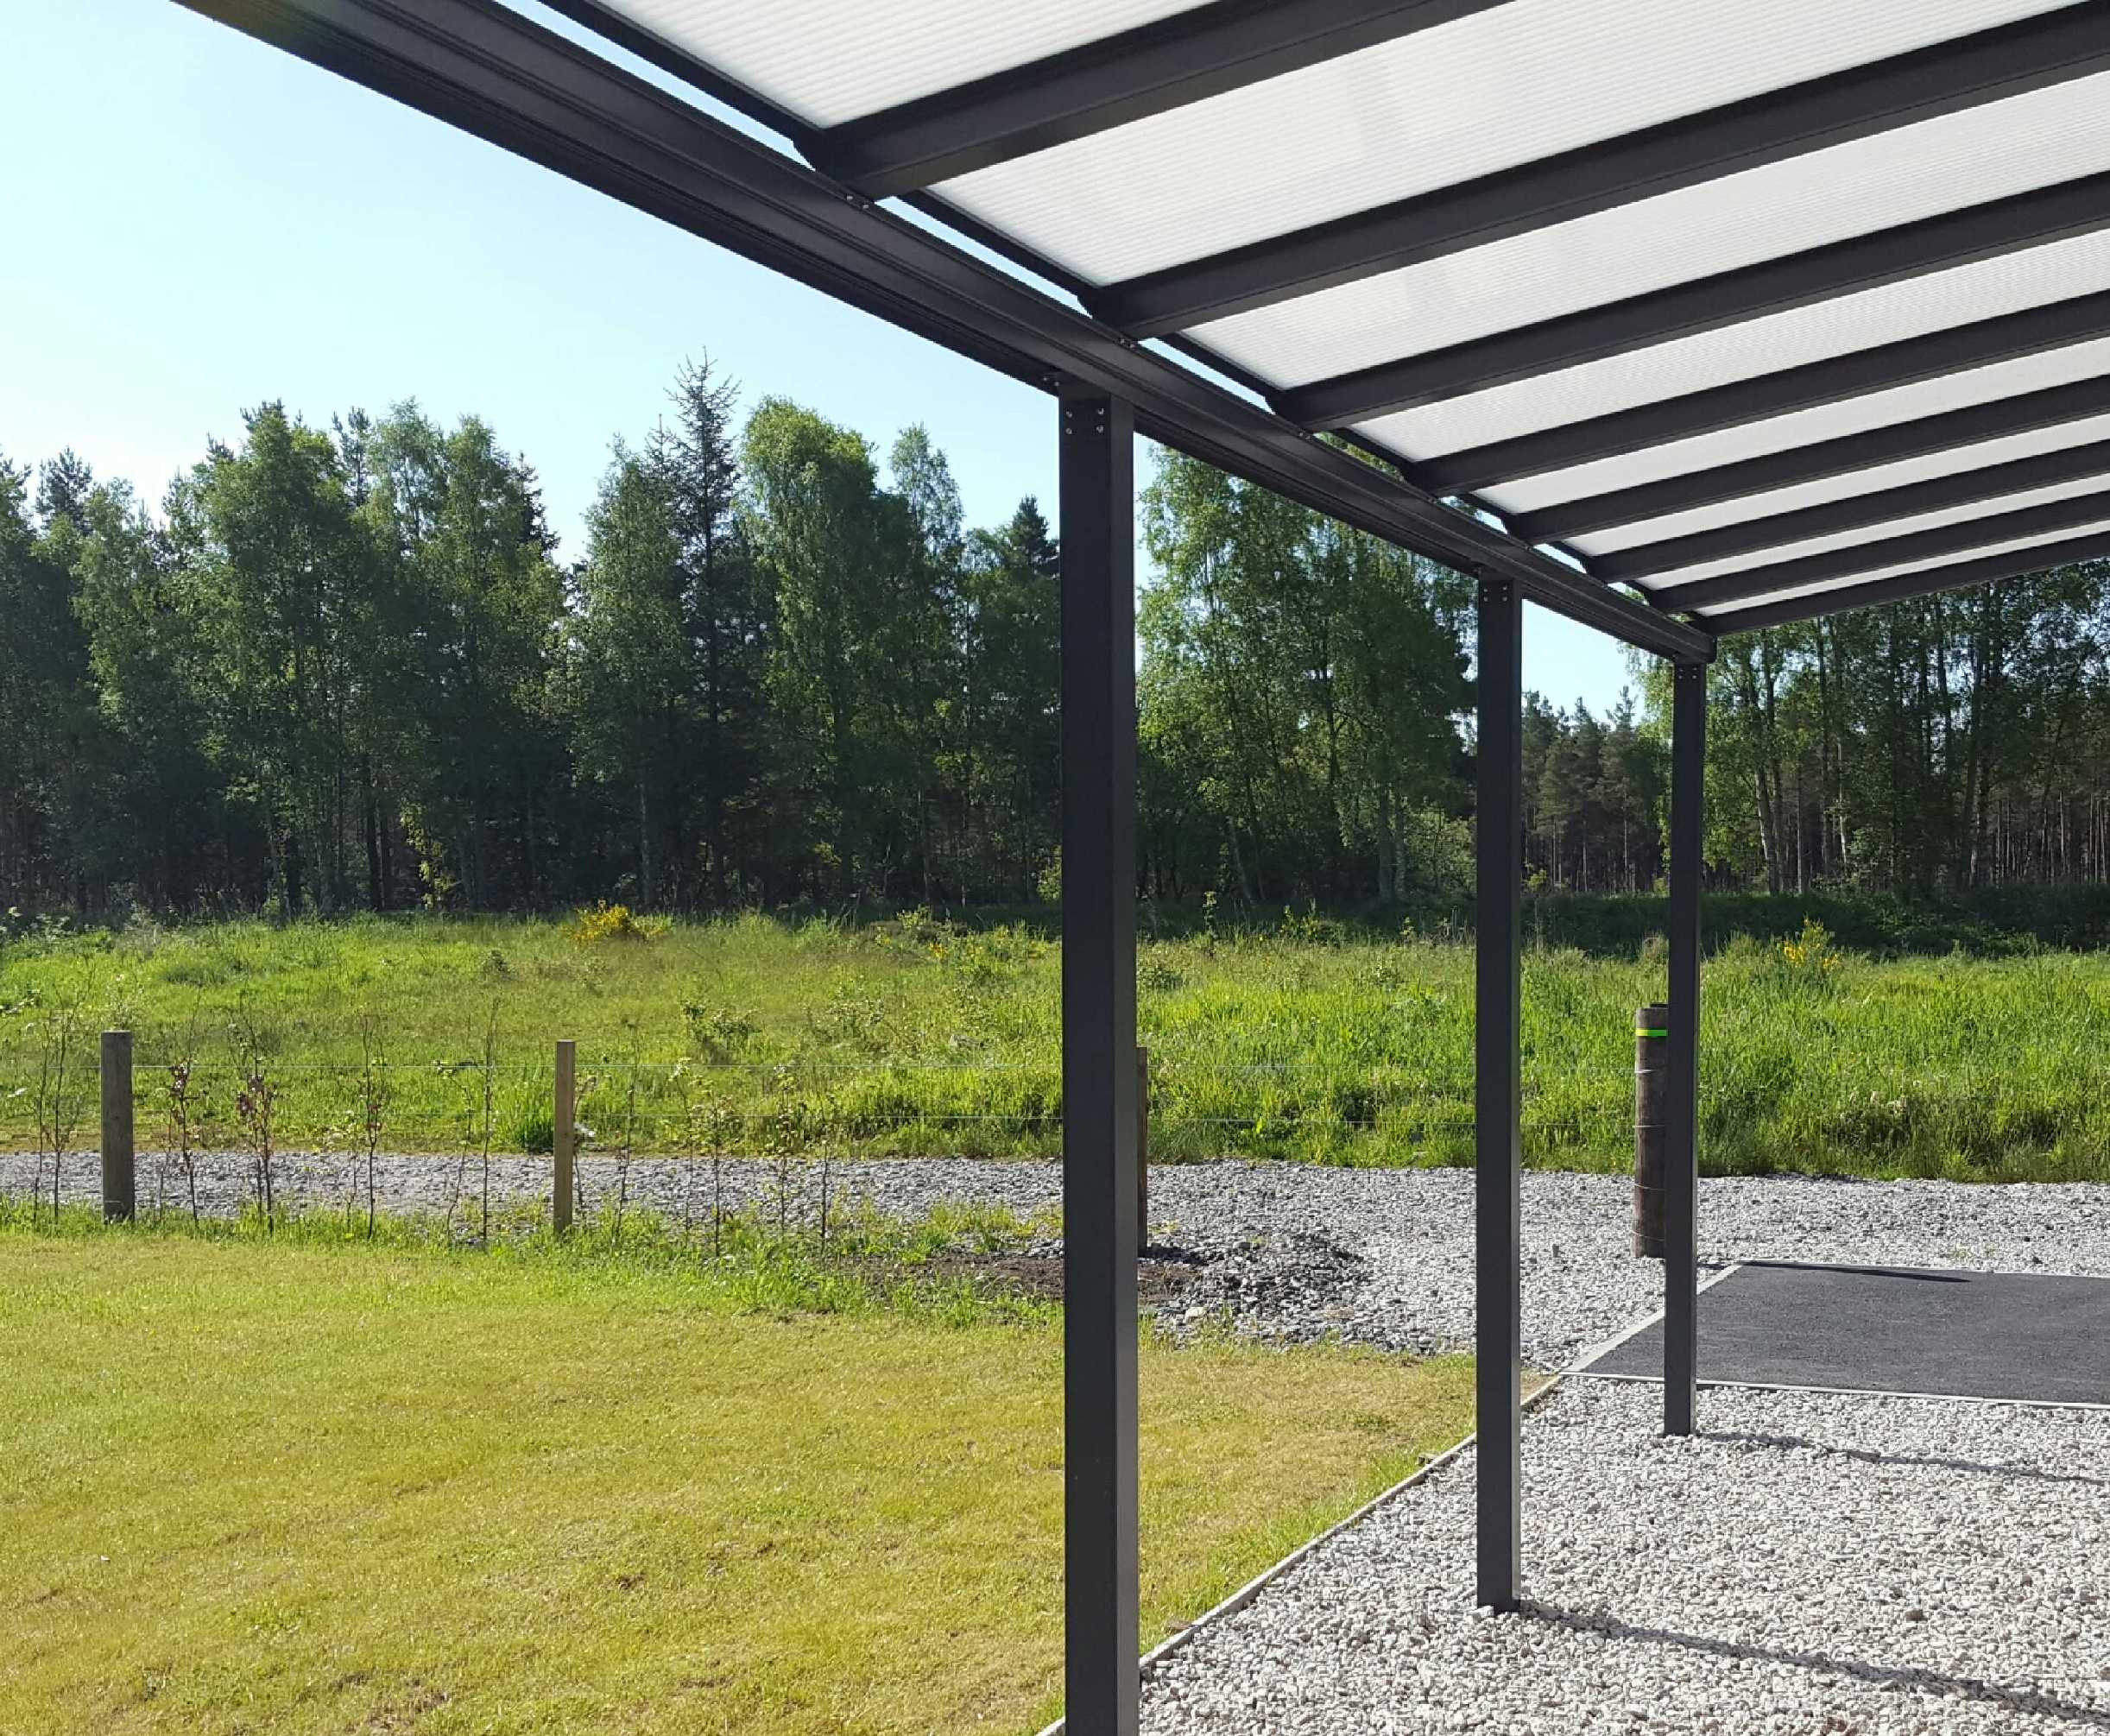 Omega Smart Lean-To Canopy, Anthracite Grey, 16mm Polycarbonate Glazing - 11.4m (W) x 4.0m (P), (5) Supporting Posts